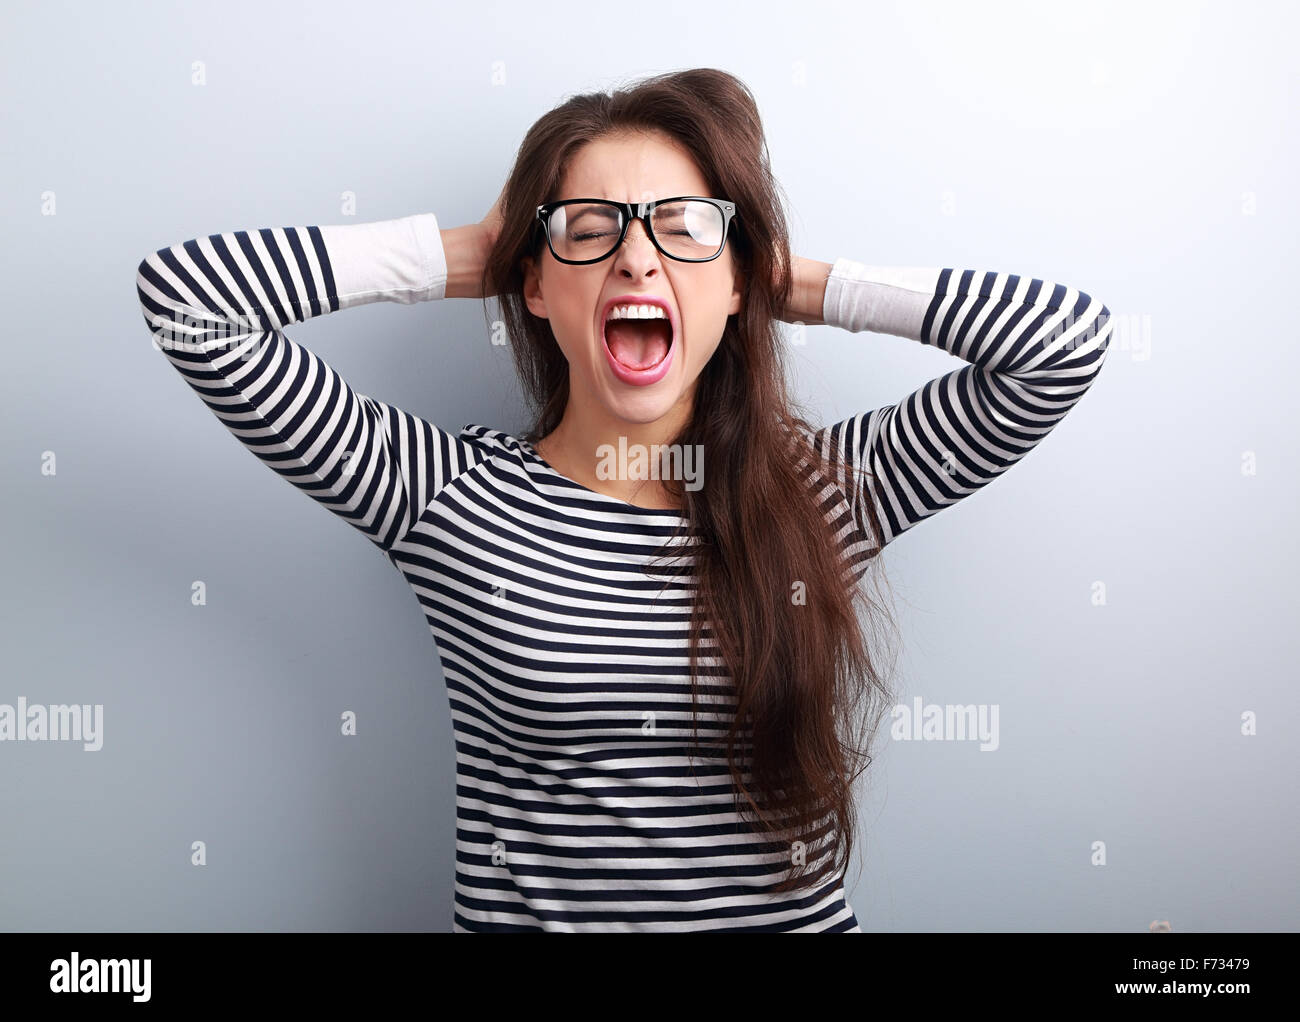 Anger young business woman in glasses strong screaming with wild open mouth and holding head the hands on blue background - Stock Image